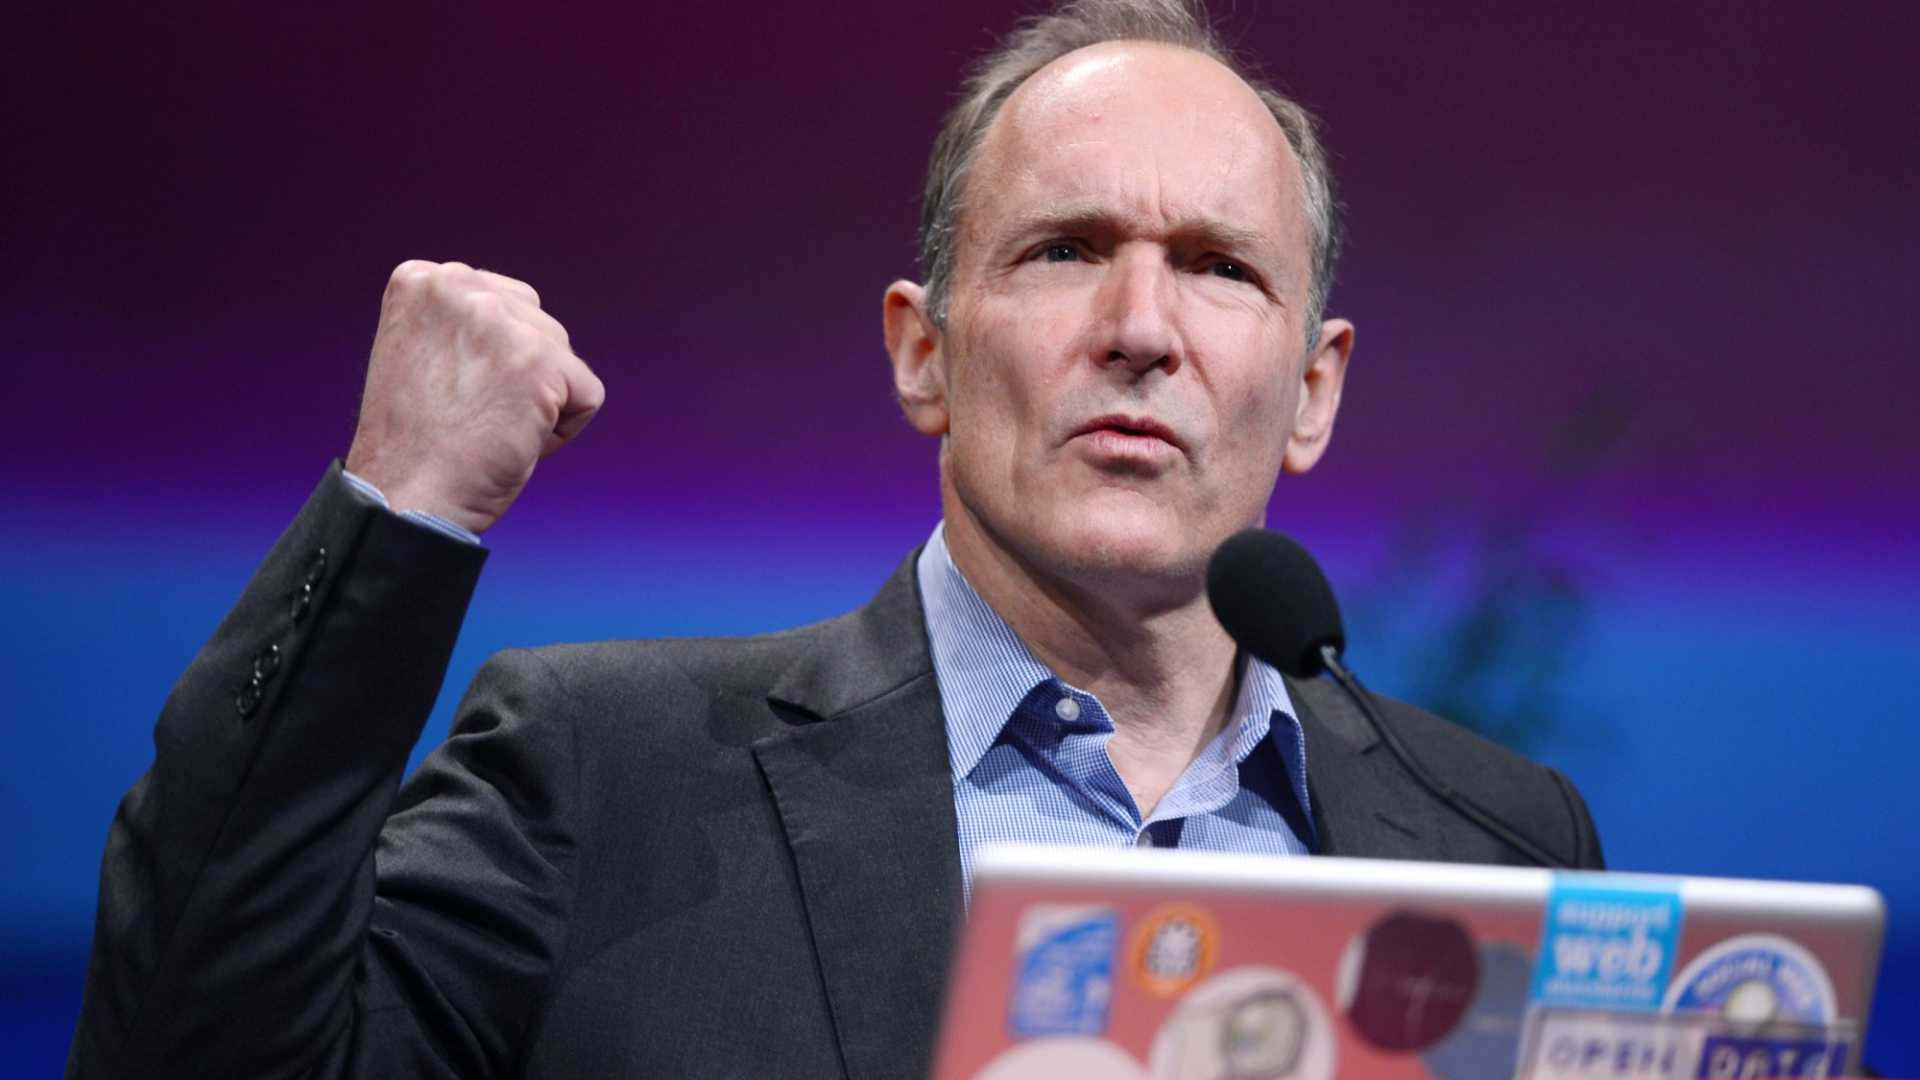 Tim Berners Lee The Inventor Of The Web Has Launched A